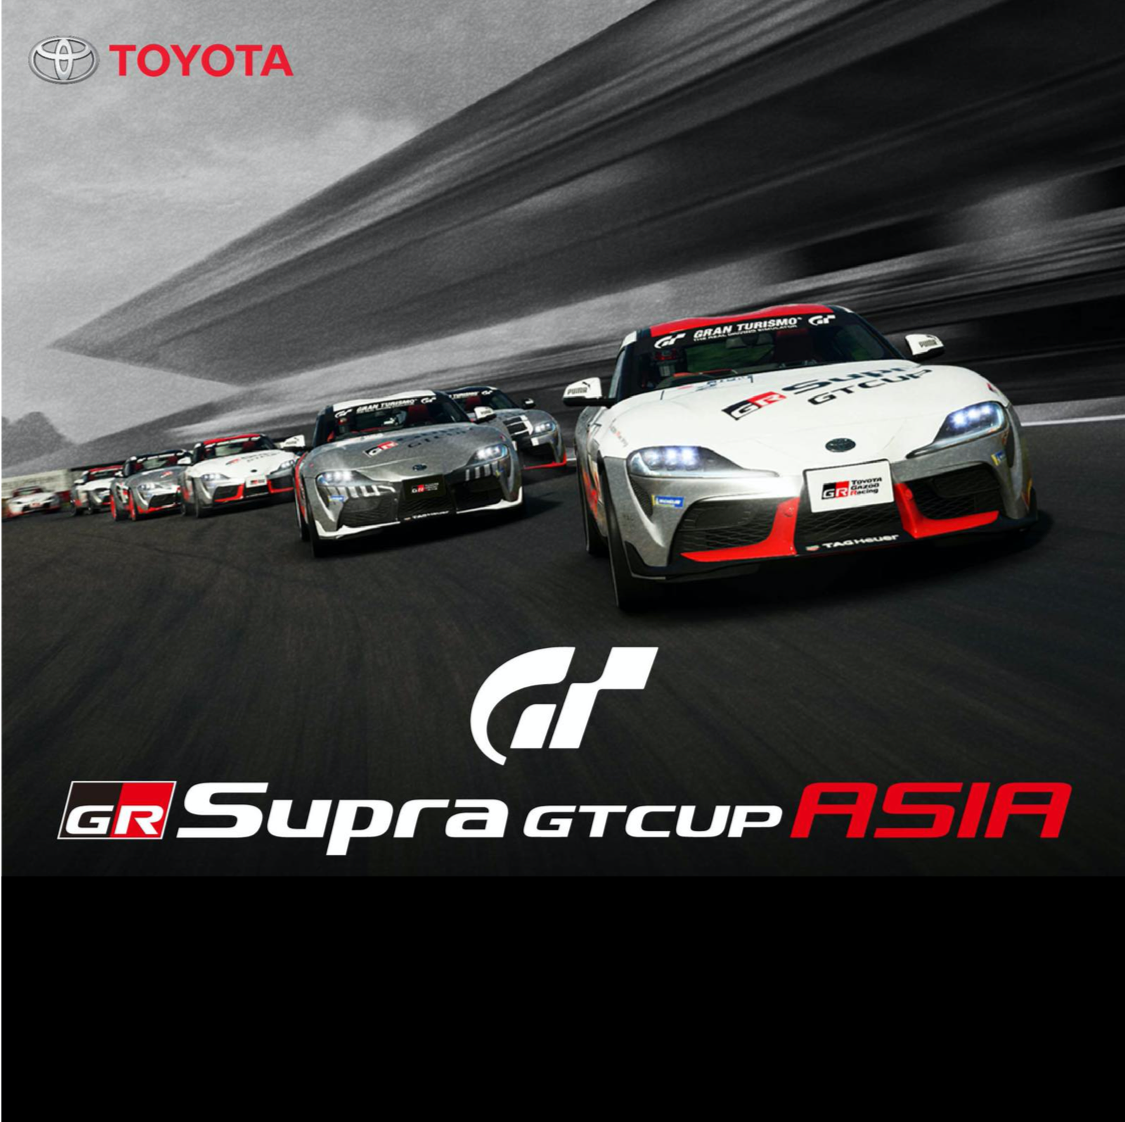 Toyota Announces E-Sports GR Supra GT Cup Asia – Philippines this July Toyota